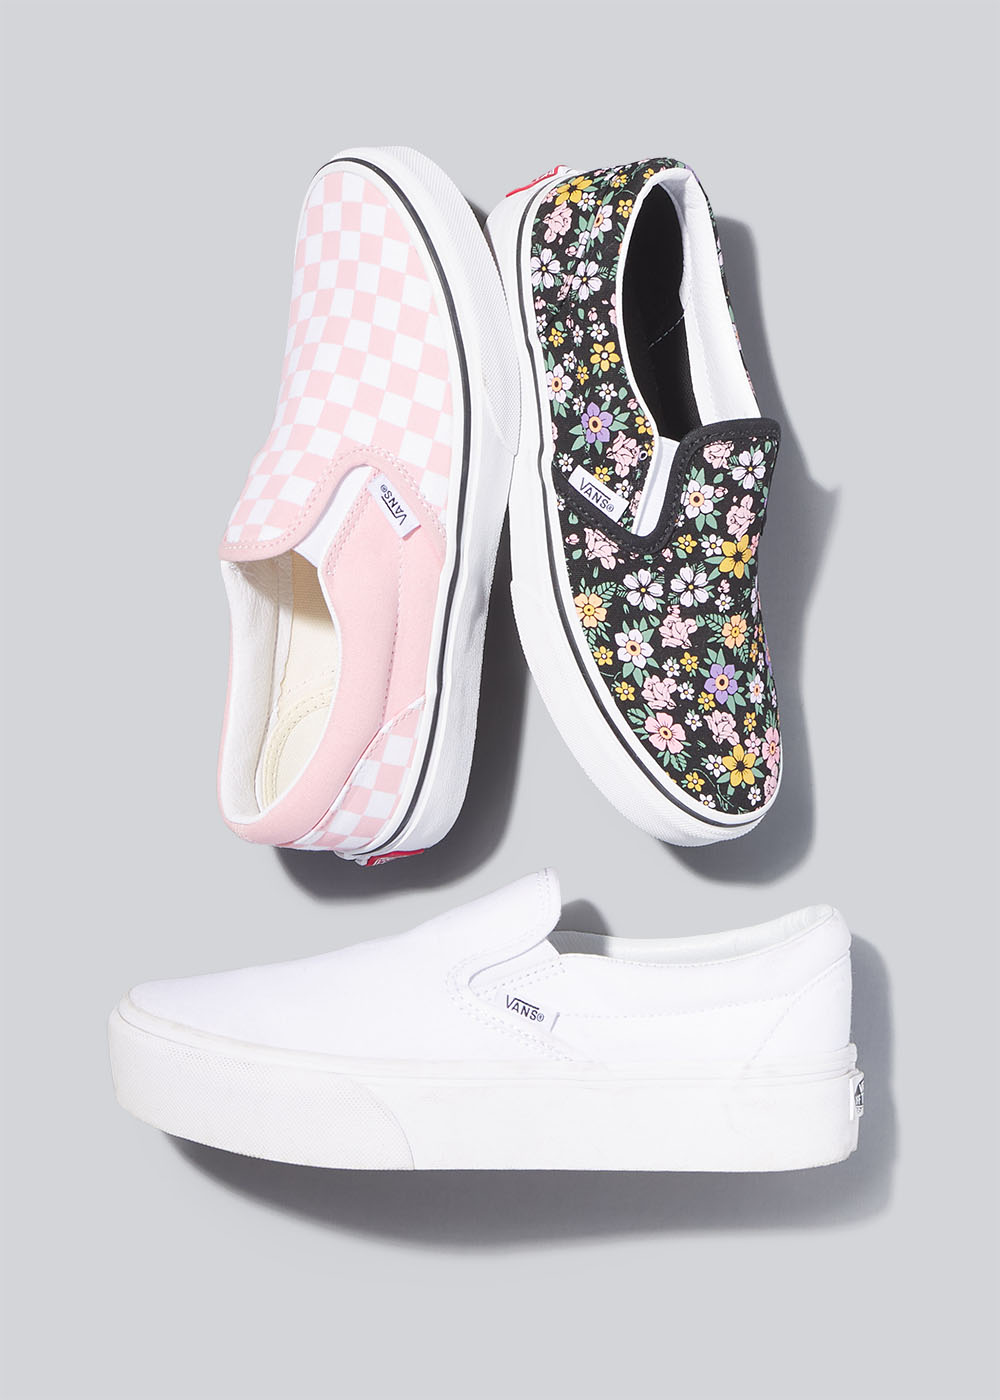 Editorial-Damion-Lloyd-Photography-Laydown-Commercial-Apparel-Product-Clothing-Art-Directed-Los-Angeles-Orange-County-Tillys-vans-slip-ons-shoes-pink-white-flowers